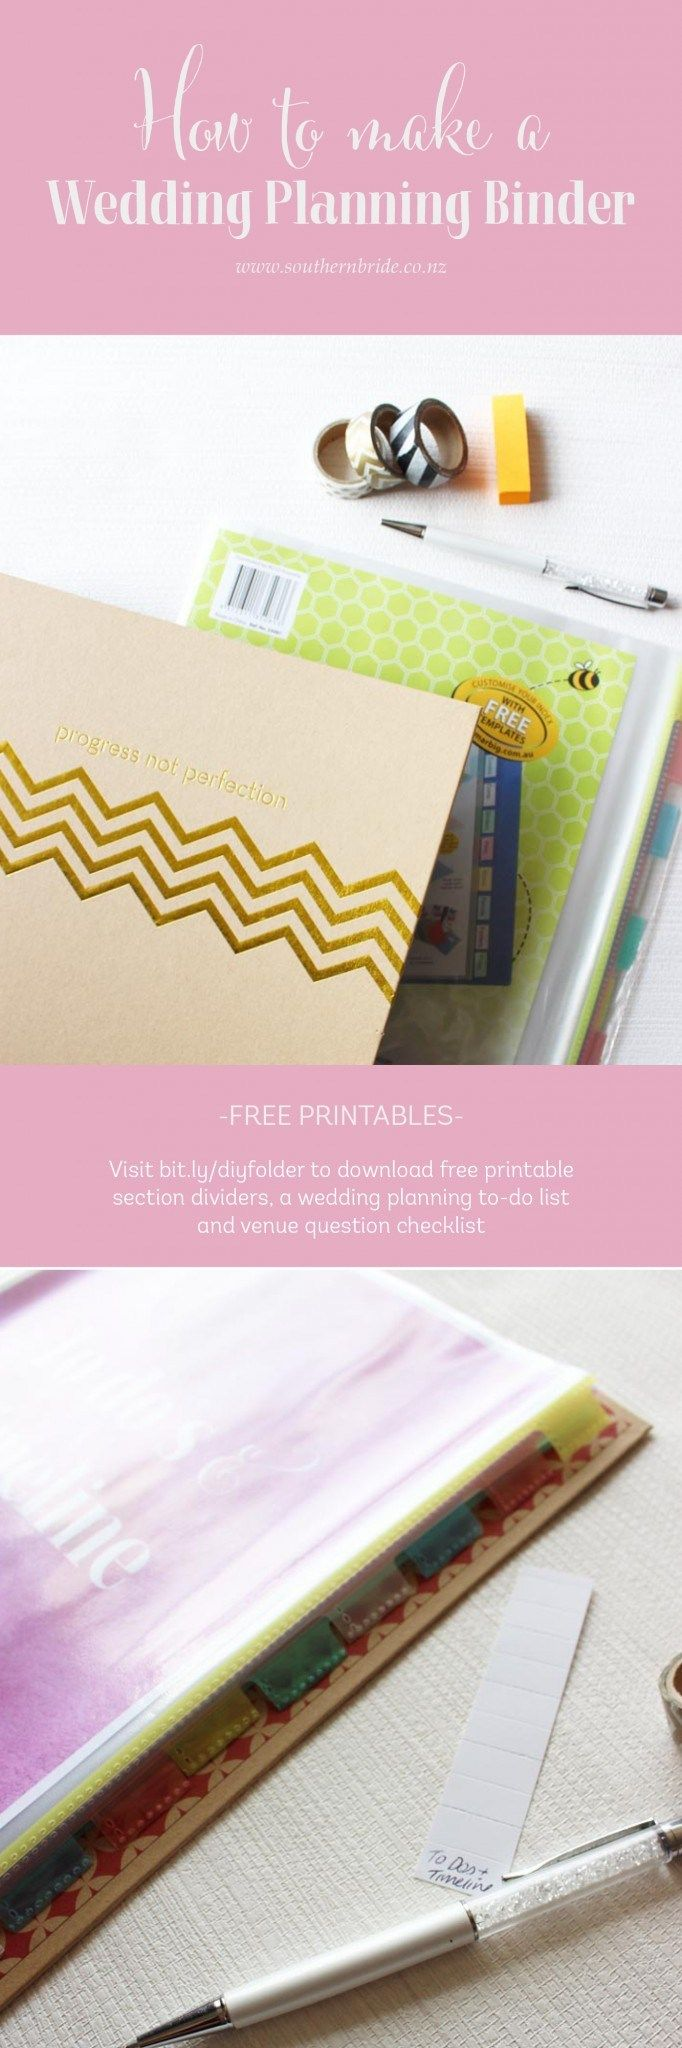 wedding planning checklist spreadsheet free%0A Make your own wedding planning folder